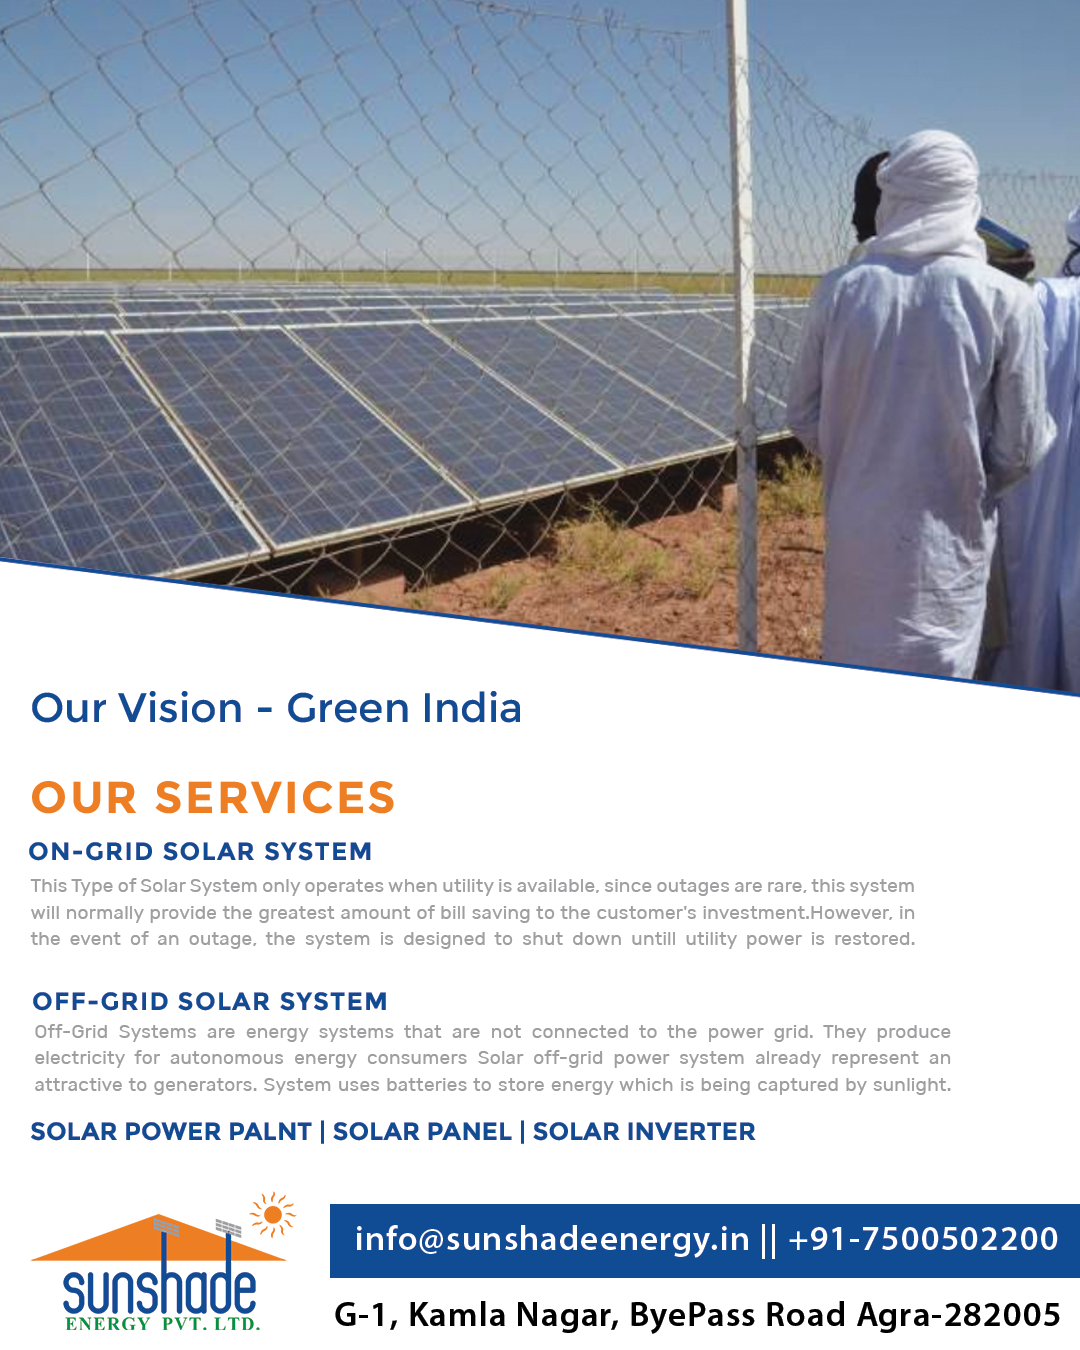 India Is Endowed With Vast Solar Energy Potential Its One Time Investment And Lifetime Saving Contact Us F On Grid Solar System Solar Inverter Energy System